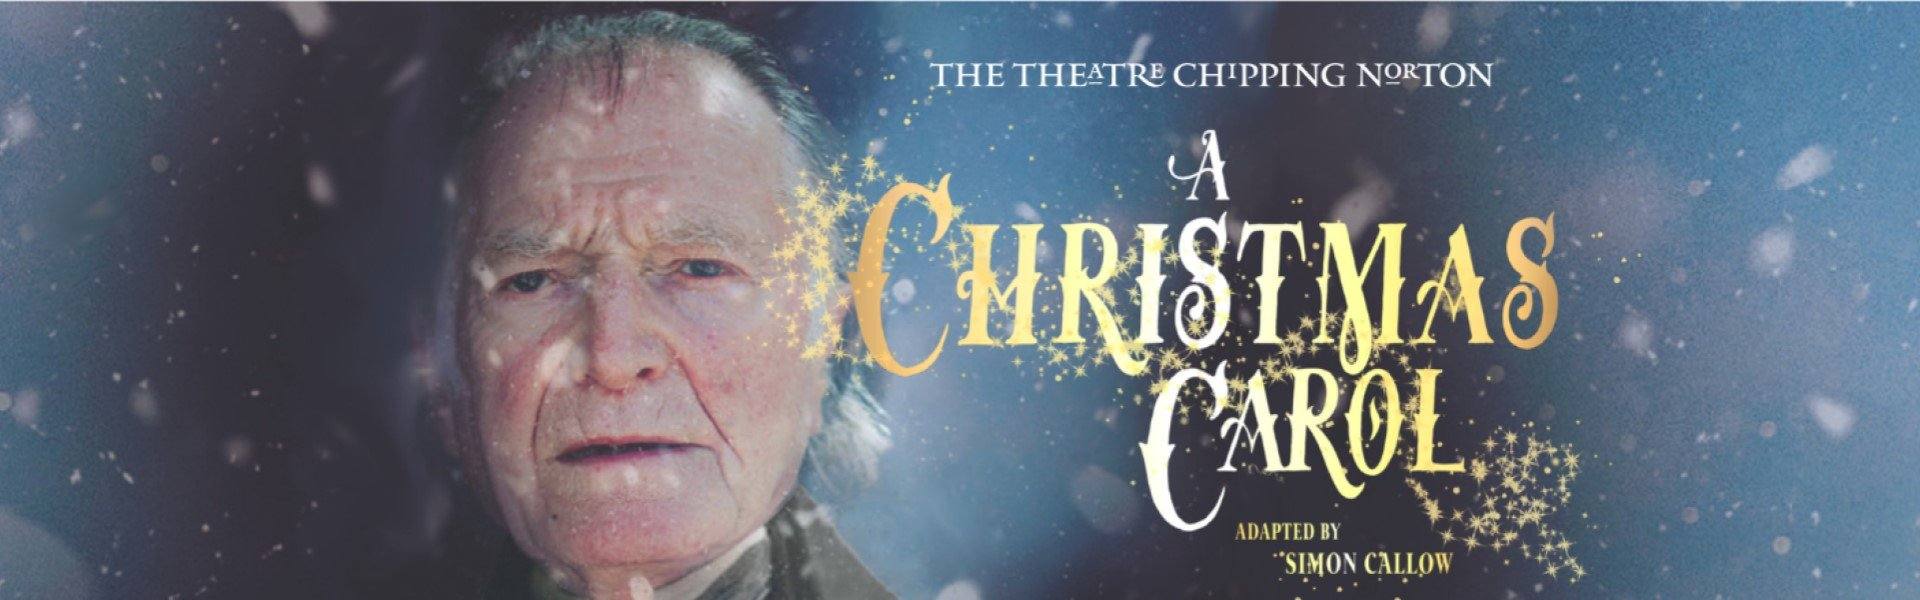 A Christmas Carol at The Theatre Chipping Norton